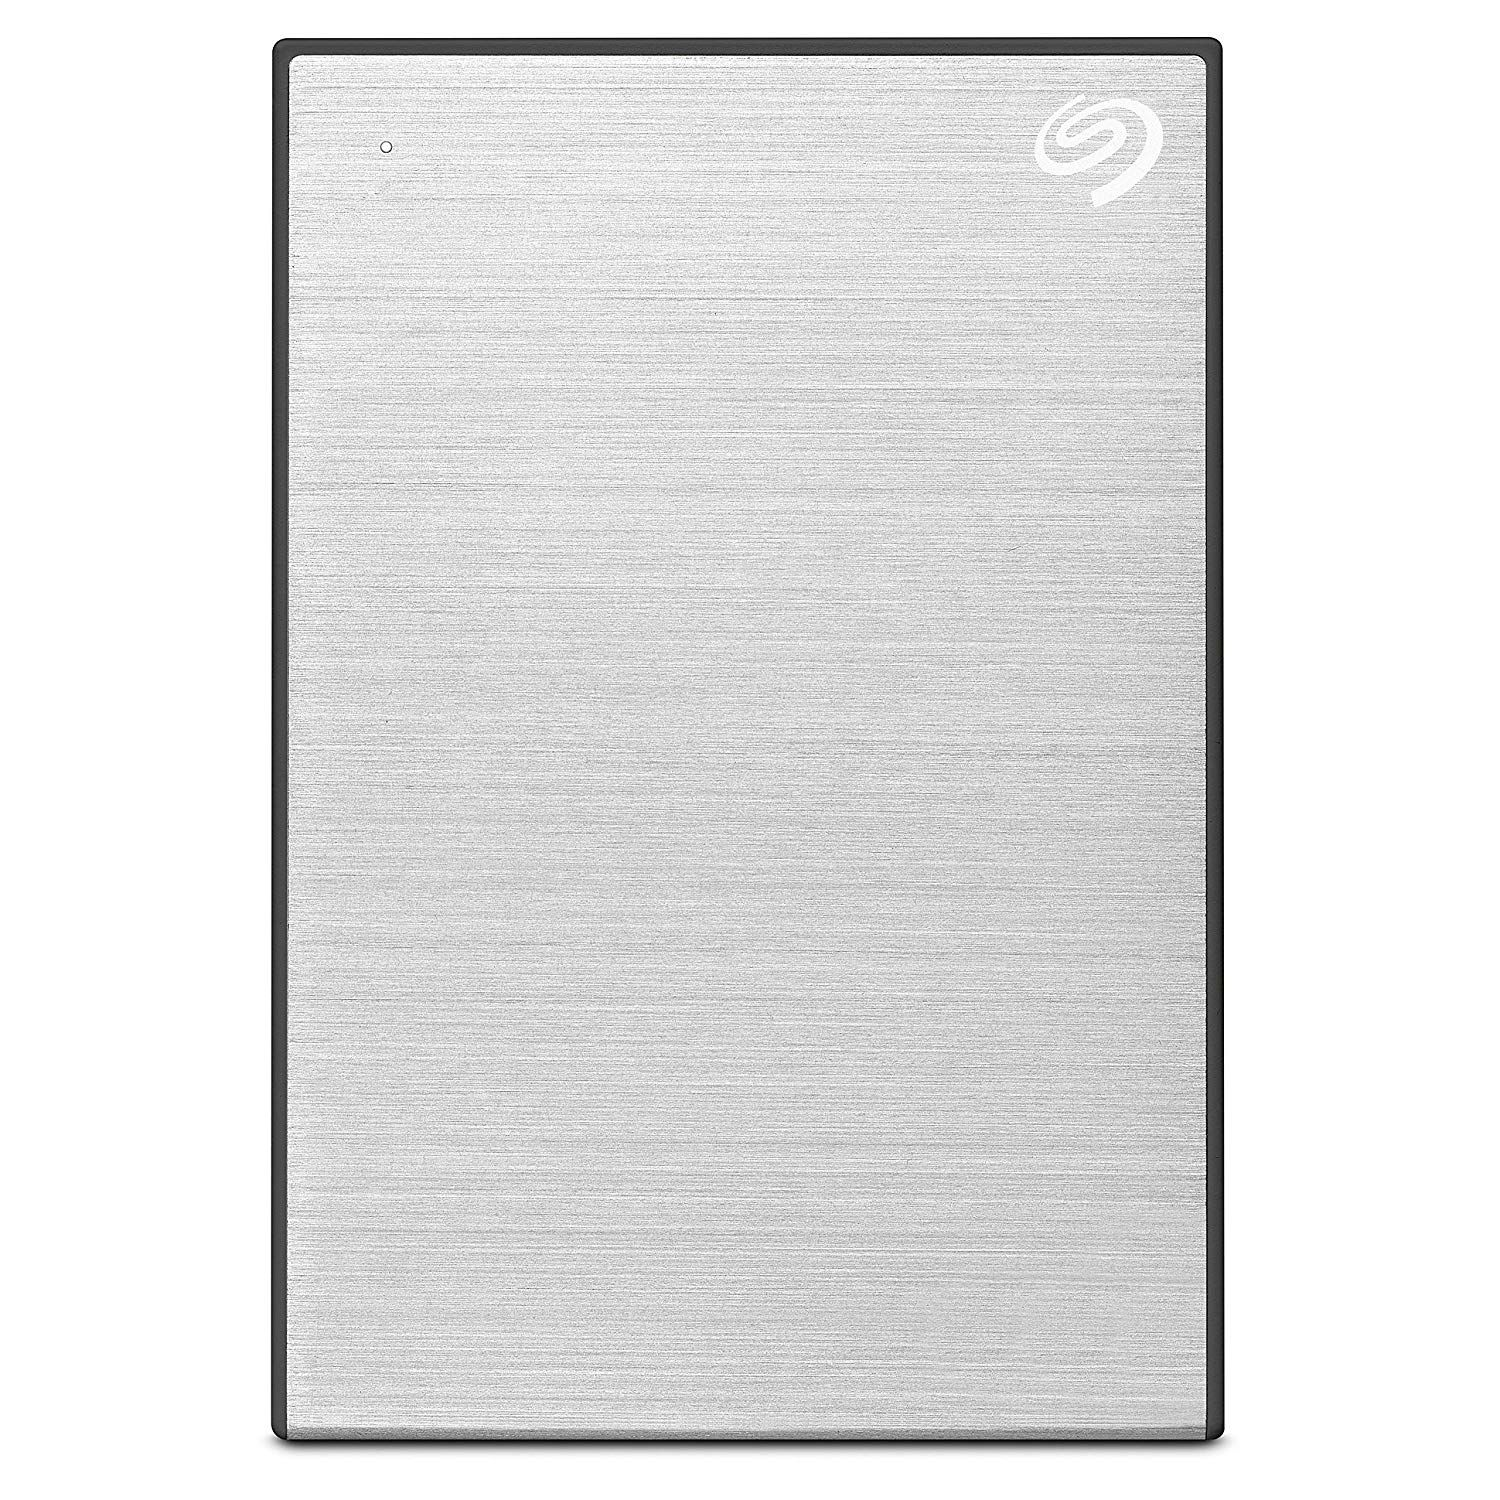 Seagate Backup Plus Slim 4TB External Hard Drive Portable HDD-Silver USB 3.0 for PC Laptop and Mac, 1 year Mylio Create, 4 Months Adobe CC Photography, and 3-year Rescue Services (STHN4000401)